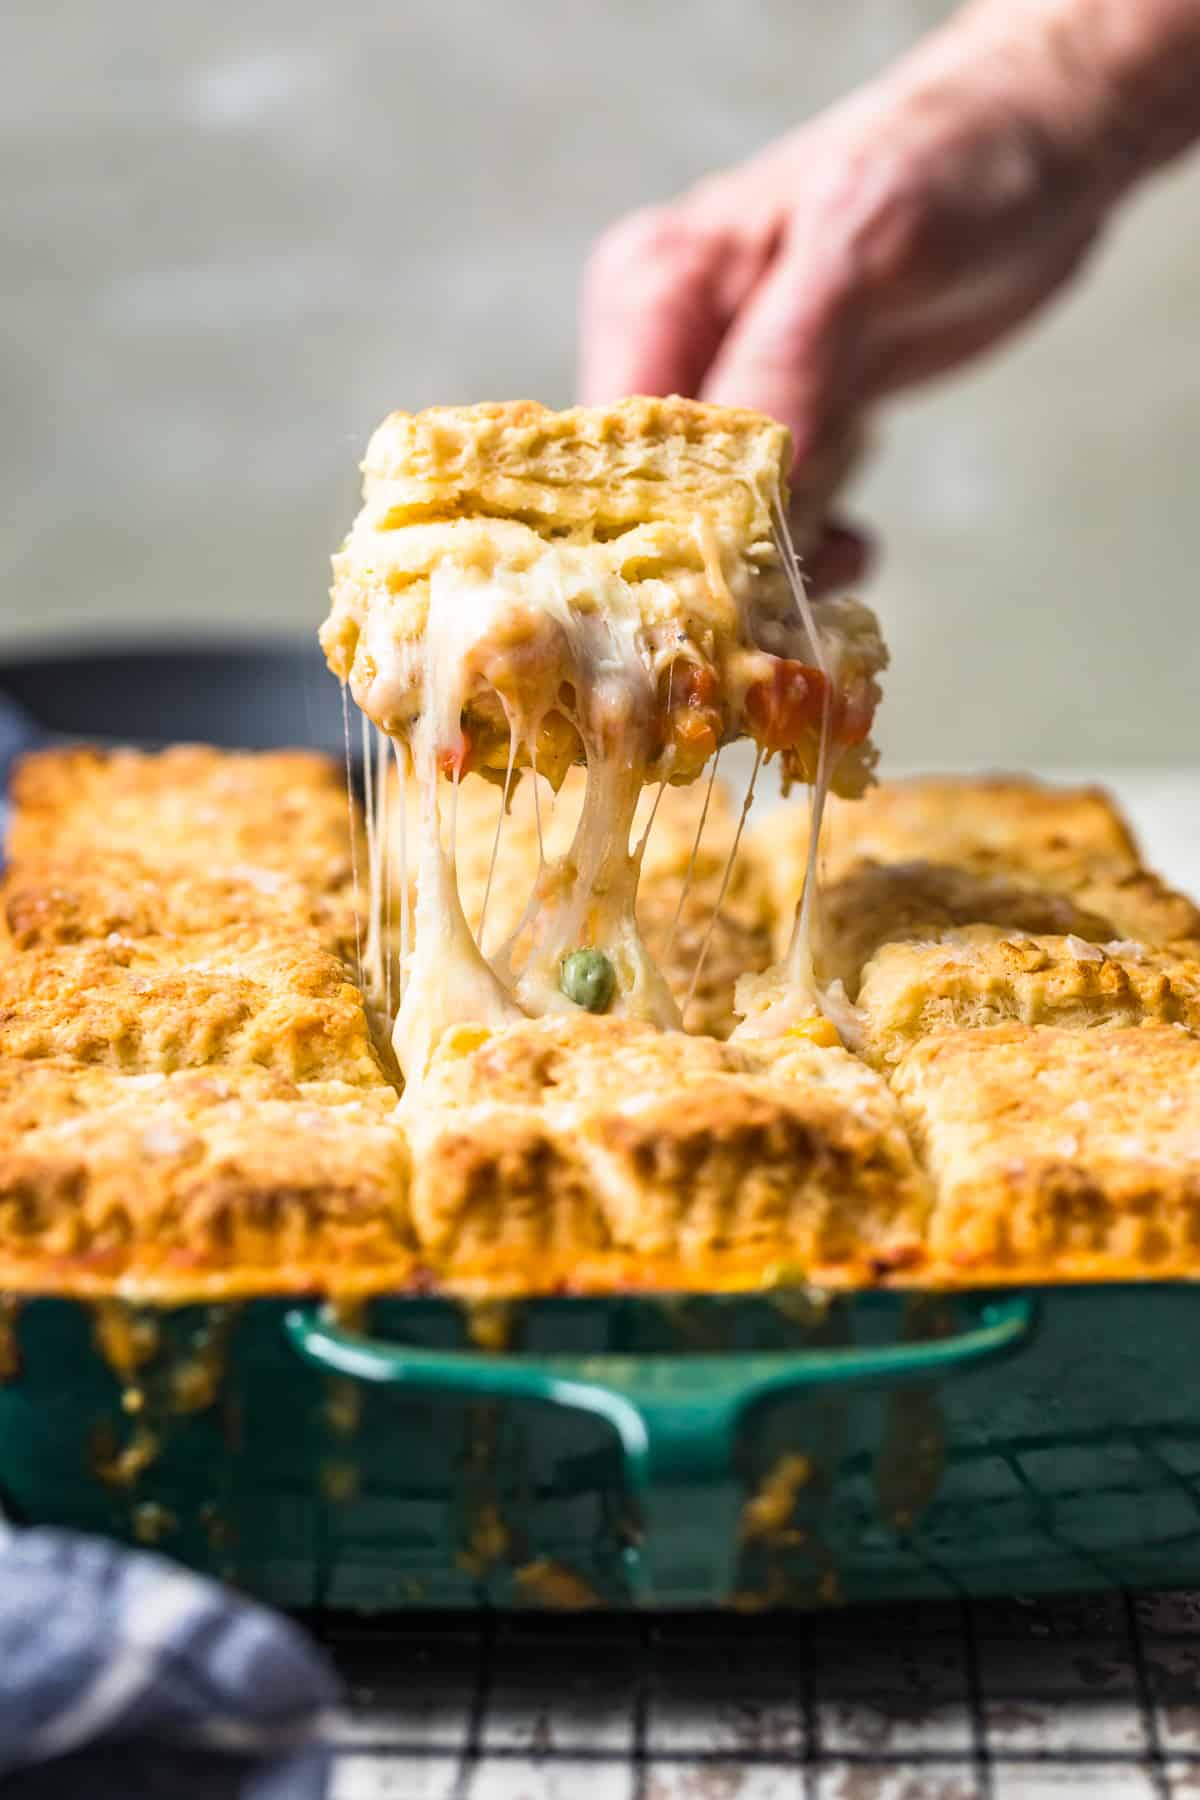 chicken pot pie being pulled out of baking dish